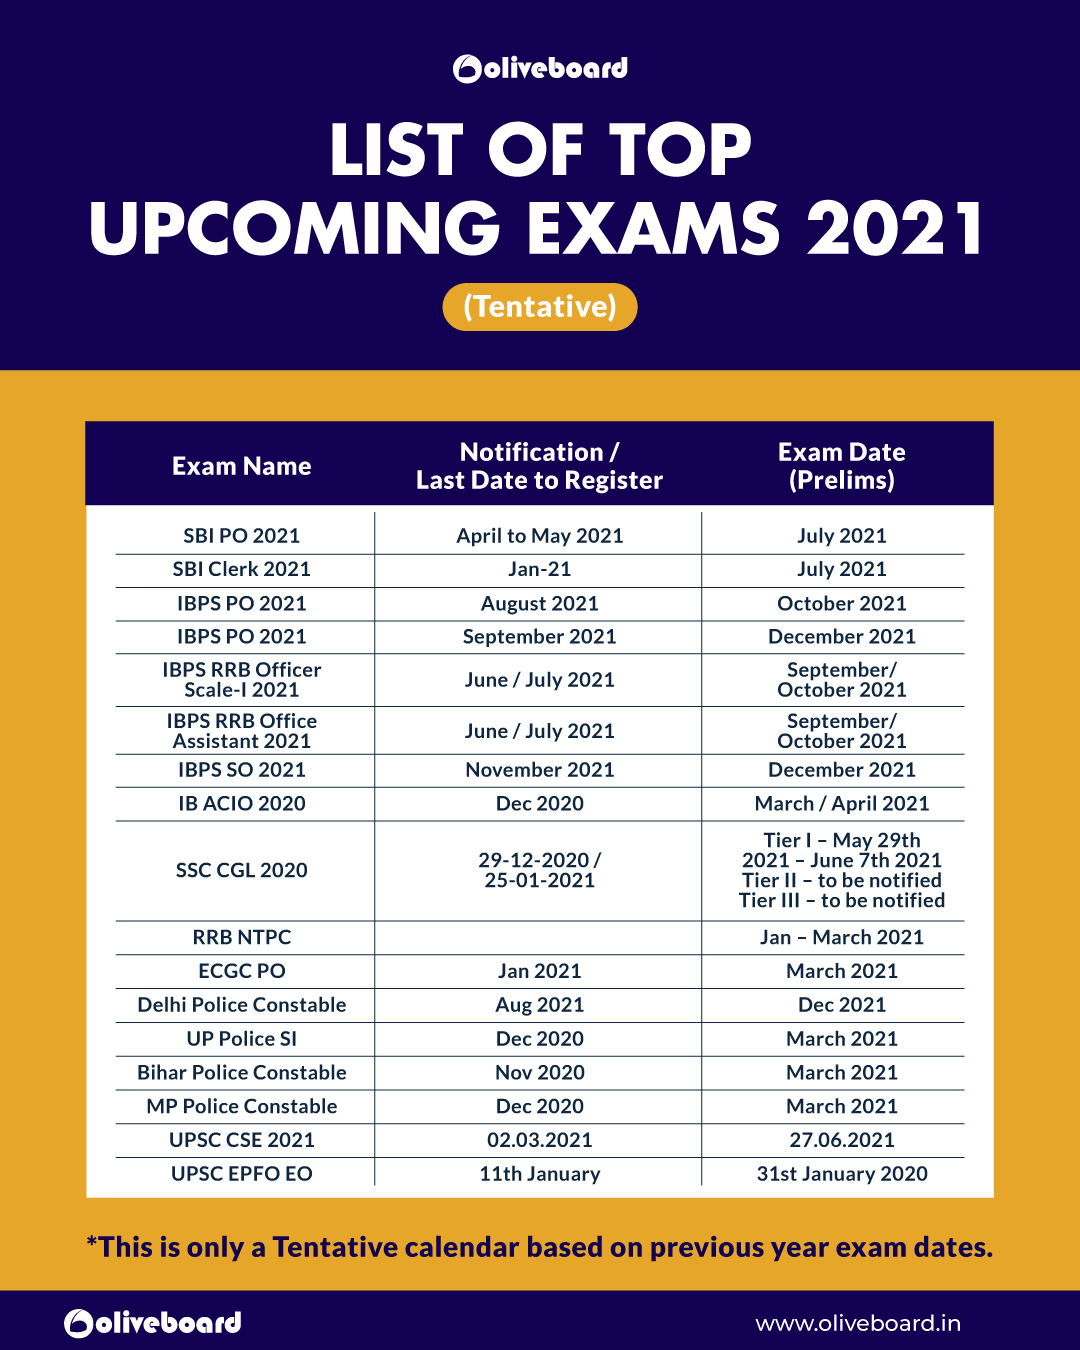 Upcoming-Exams-List-2021